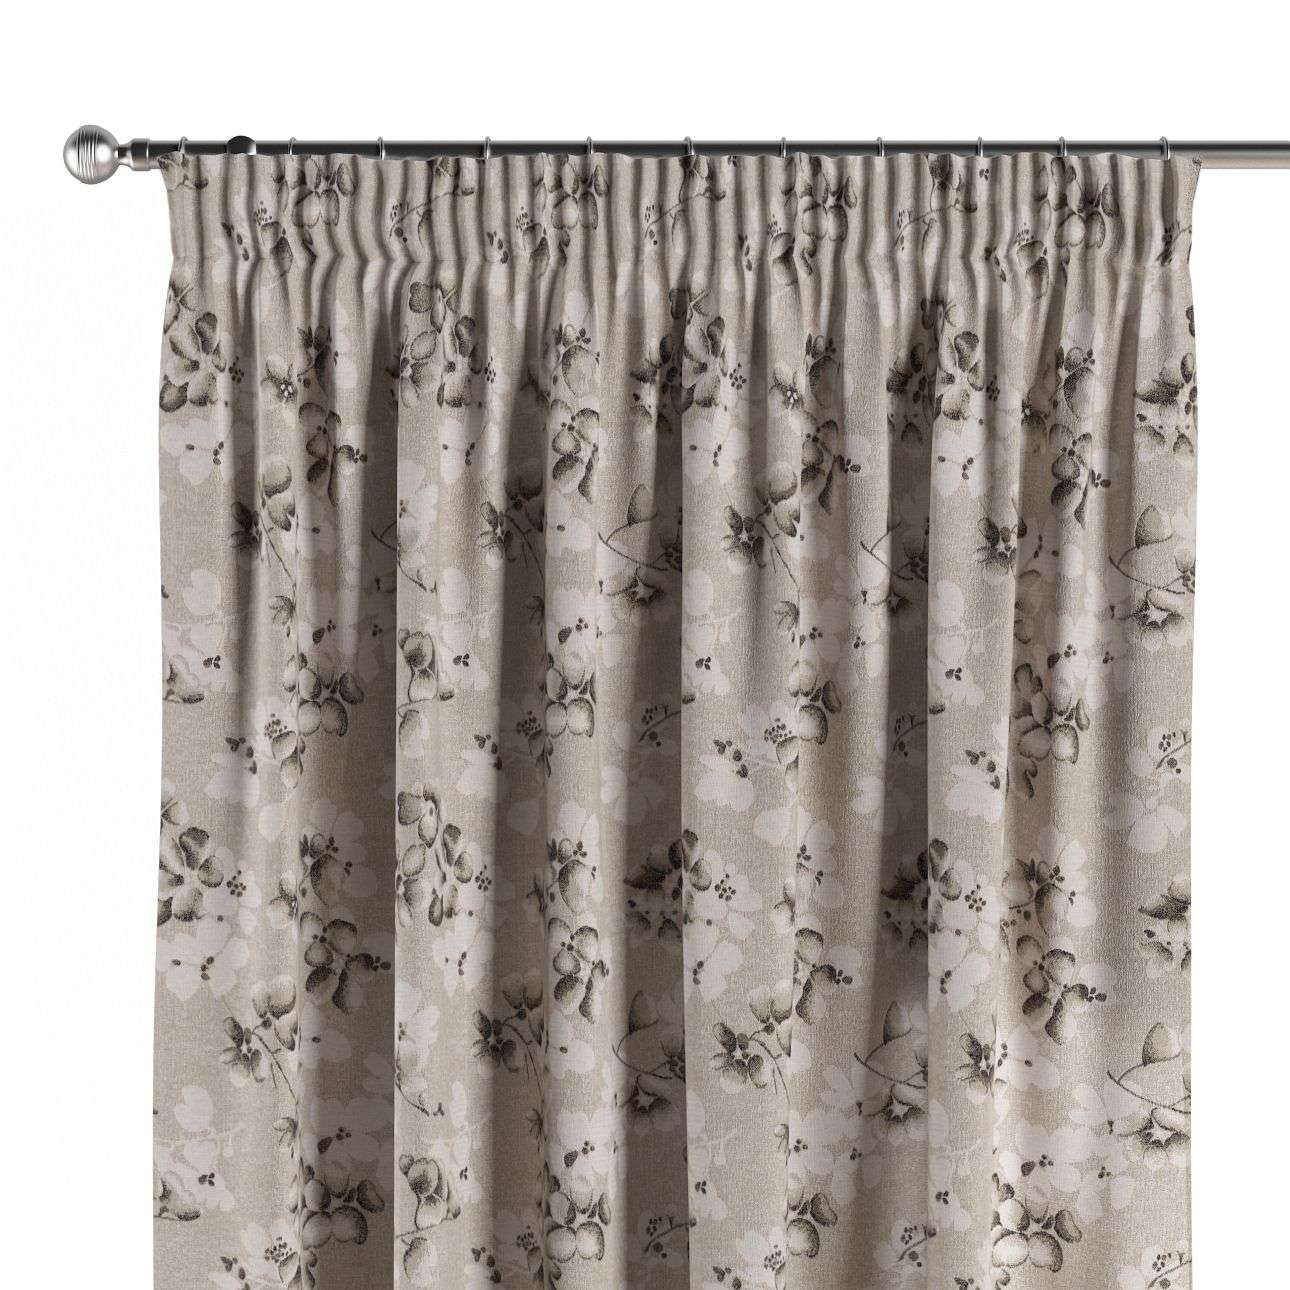 Pencil pleat curtains in collection SALE, fabric: 138-14